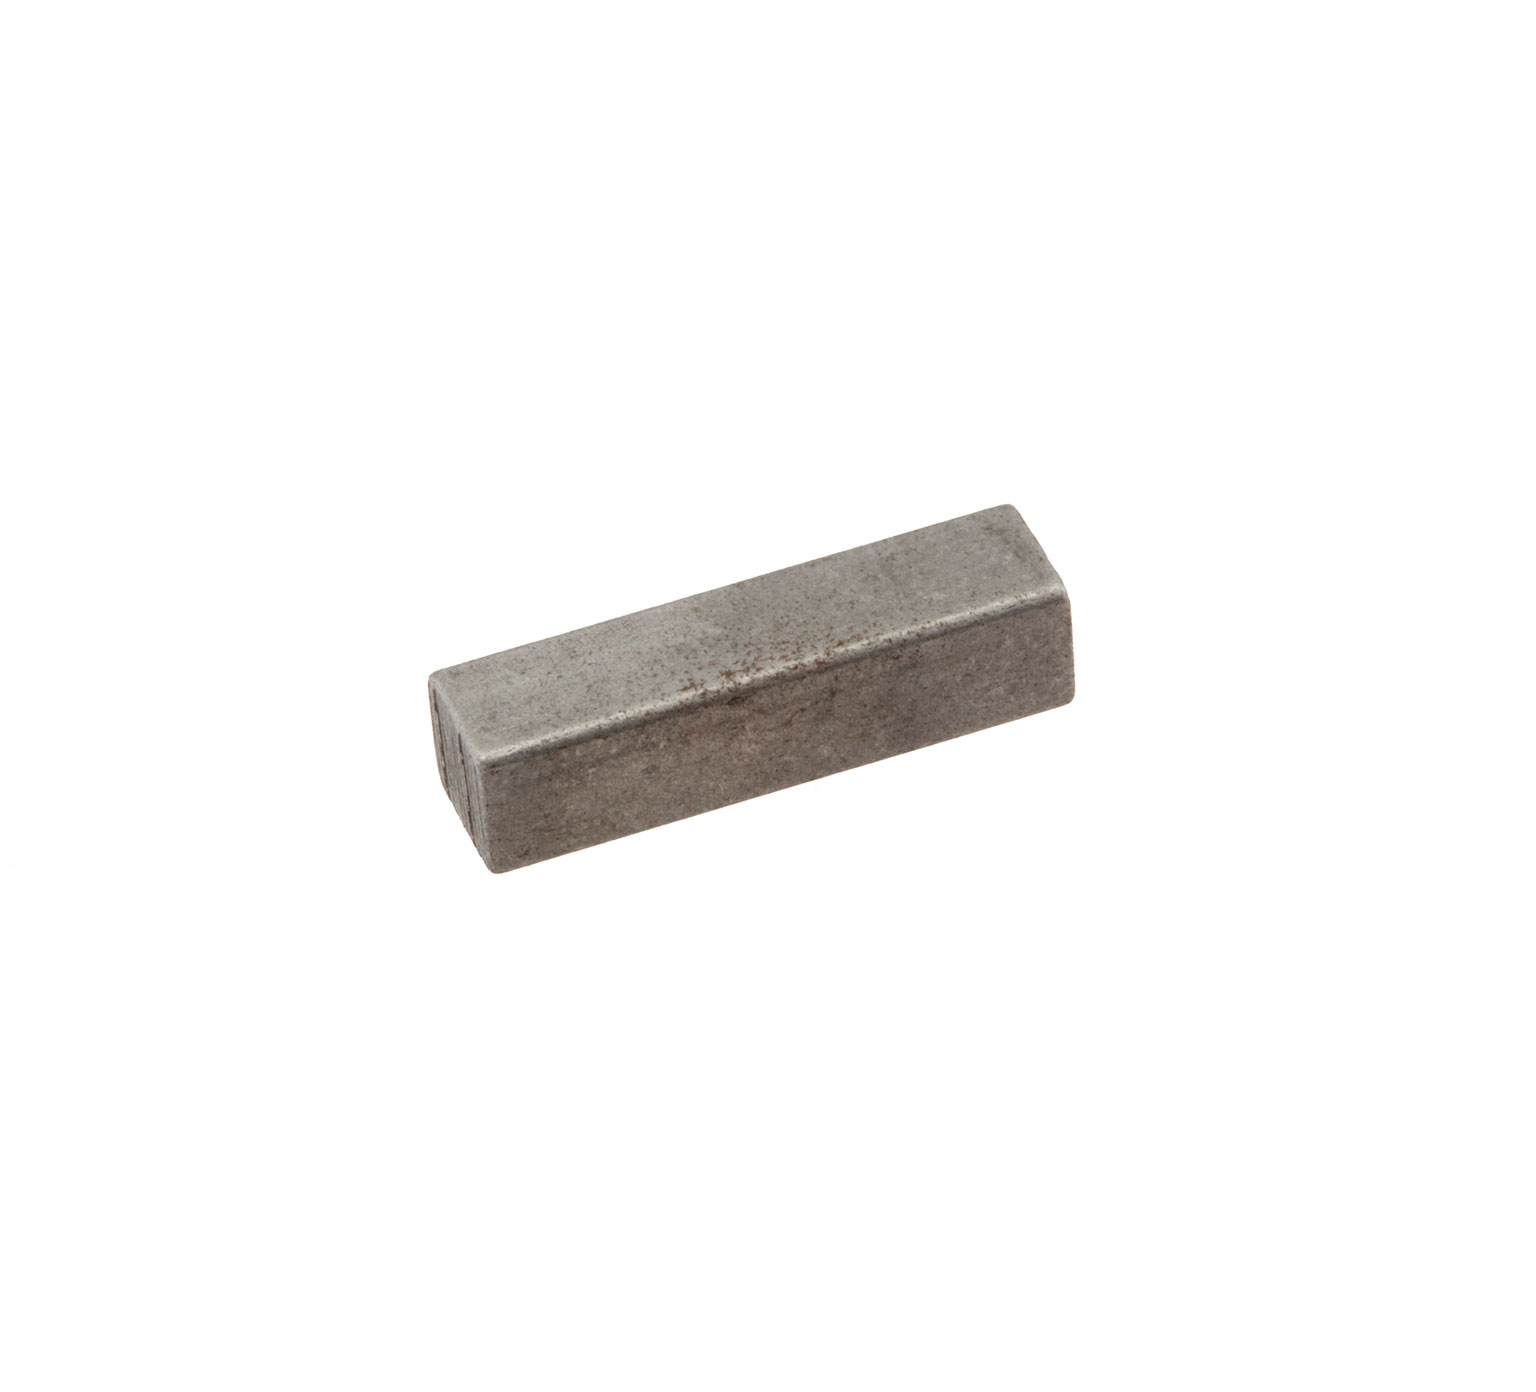 00911 Cold Rolled Steel Key - 0.187 x 0.187 x 0.75 in alt 1